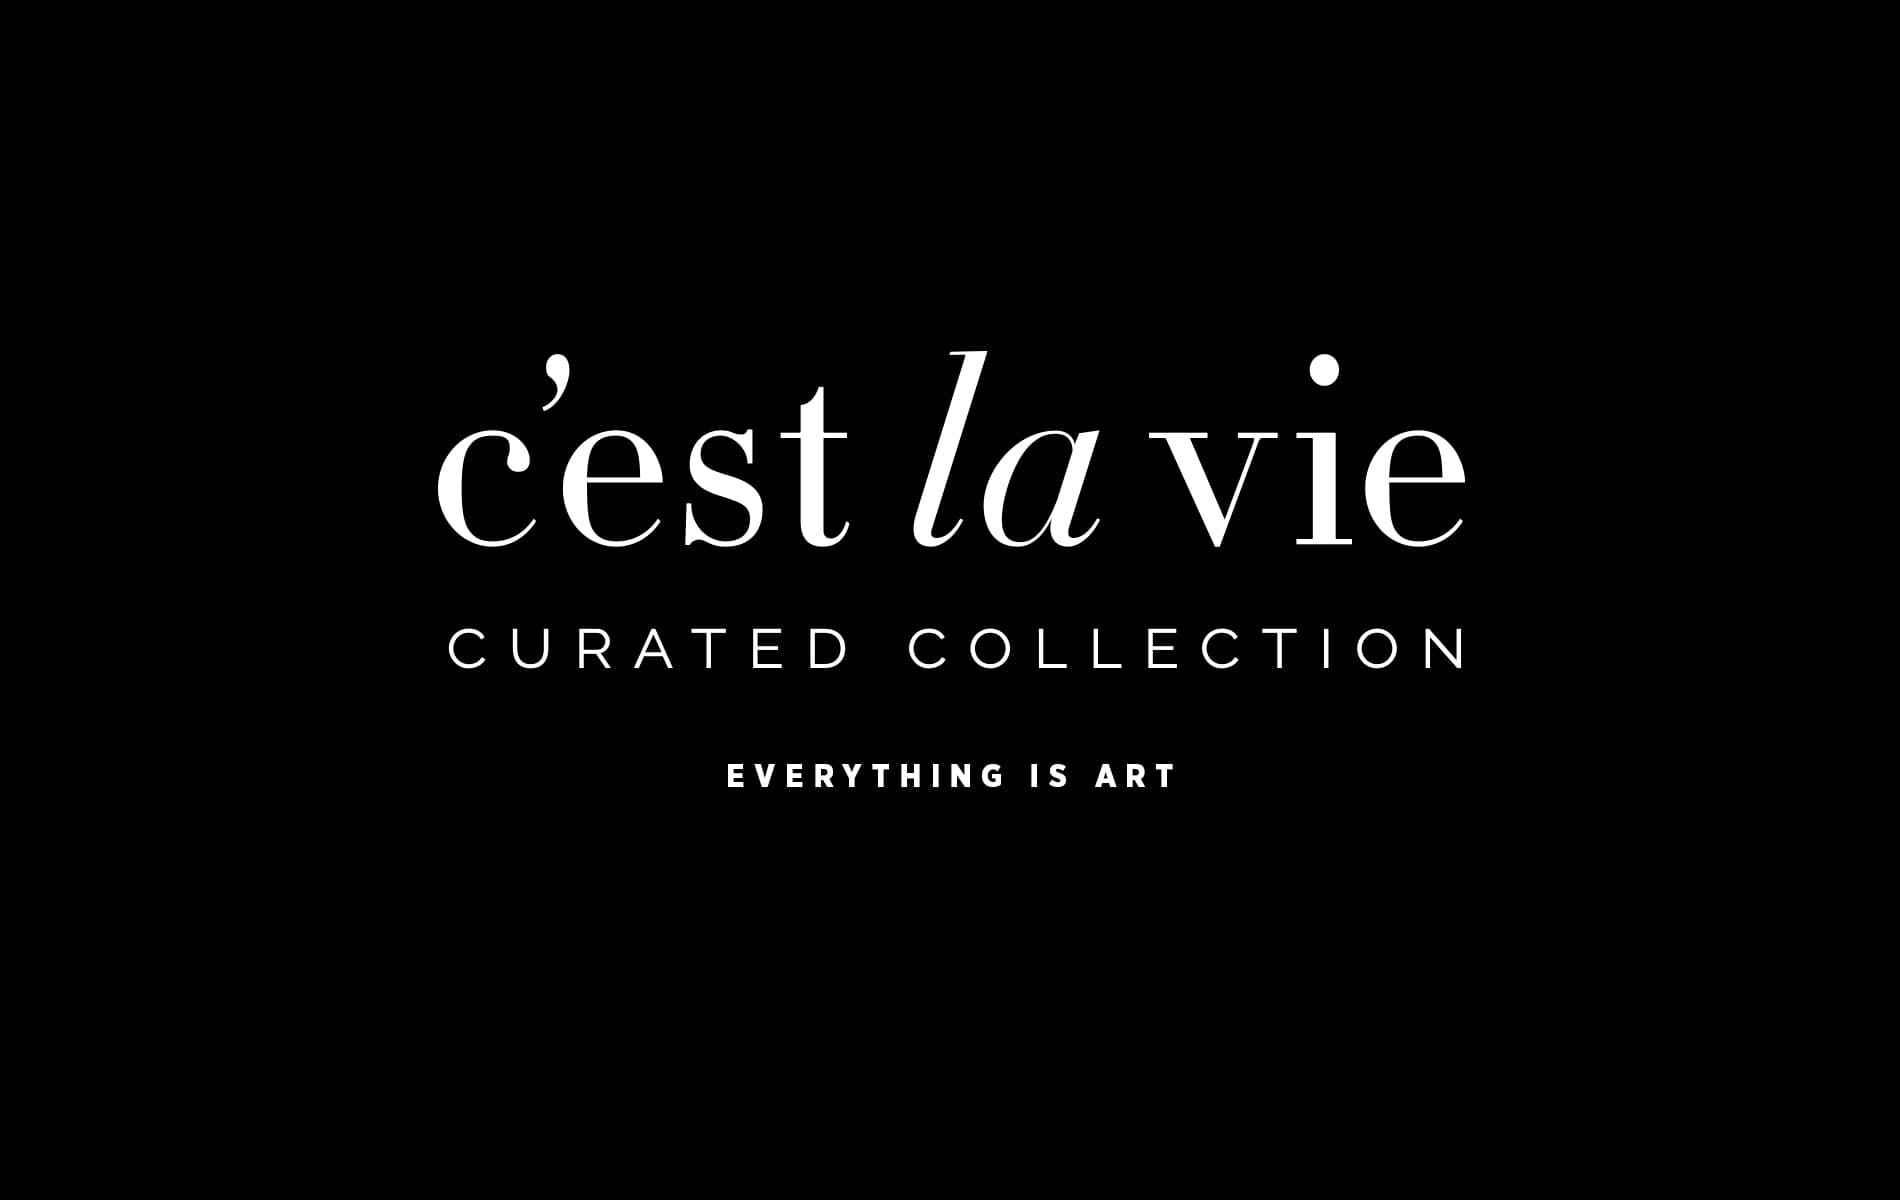 VIE Magazine C'est la VIE Curated Collection